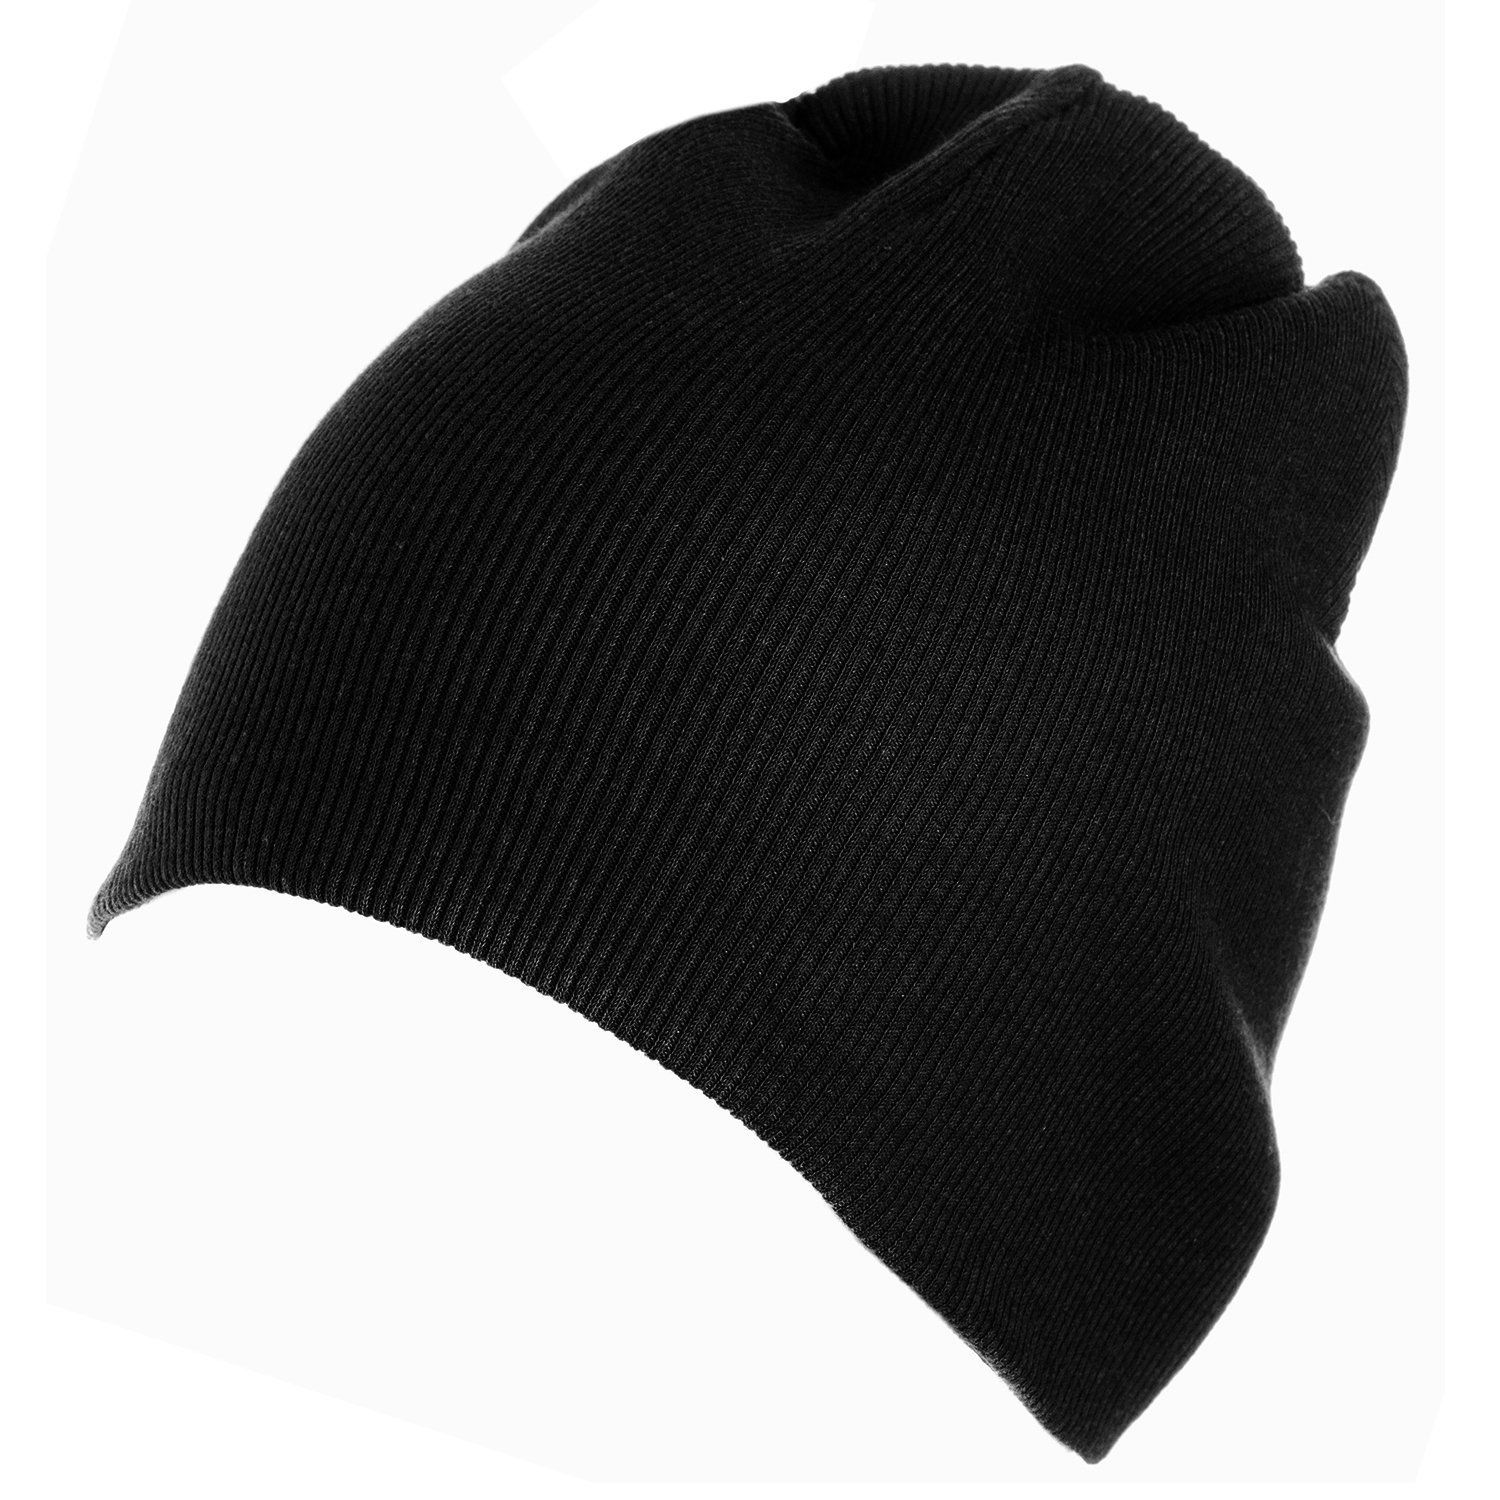 f7f666c60f6b88 Winter hat - Warm Hats - Knitted Hat - Knit Hat - Slouch Beanie - Solid